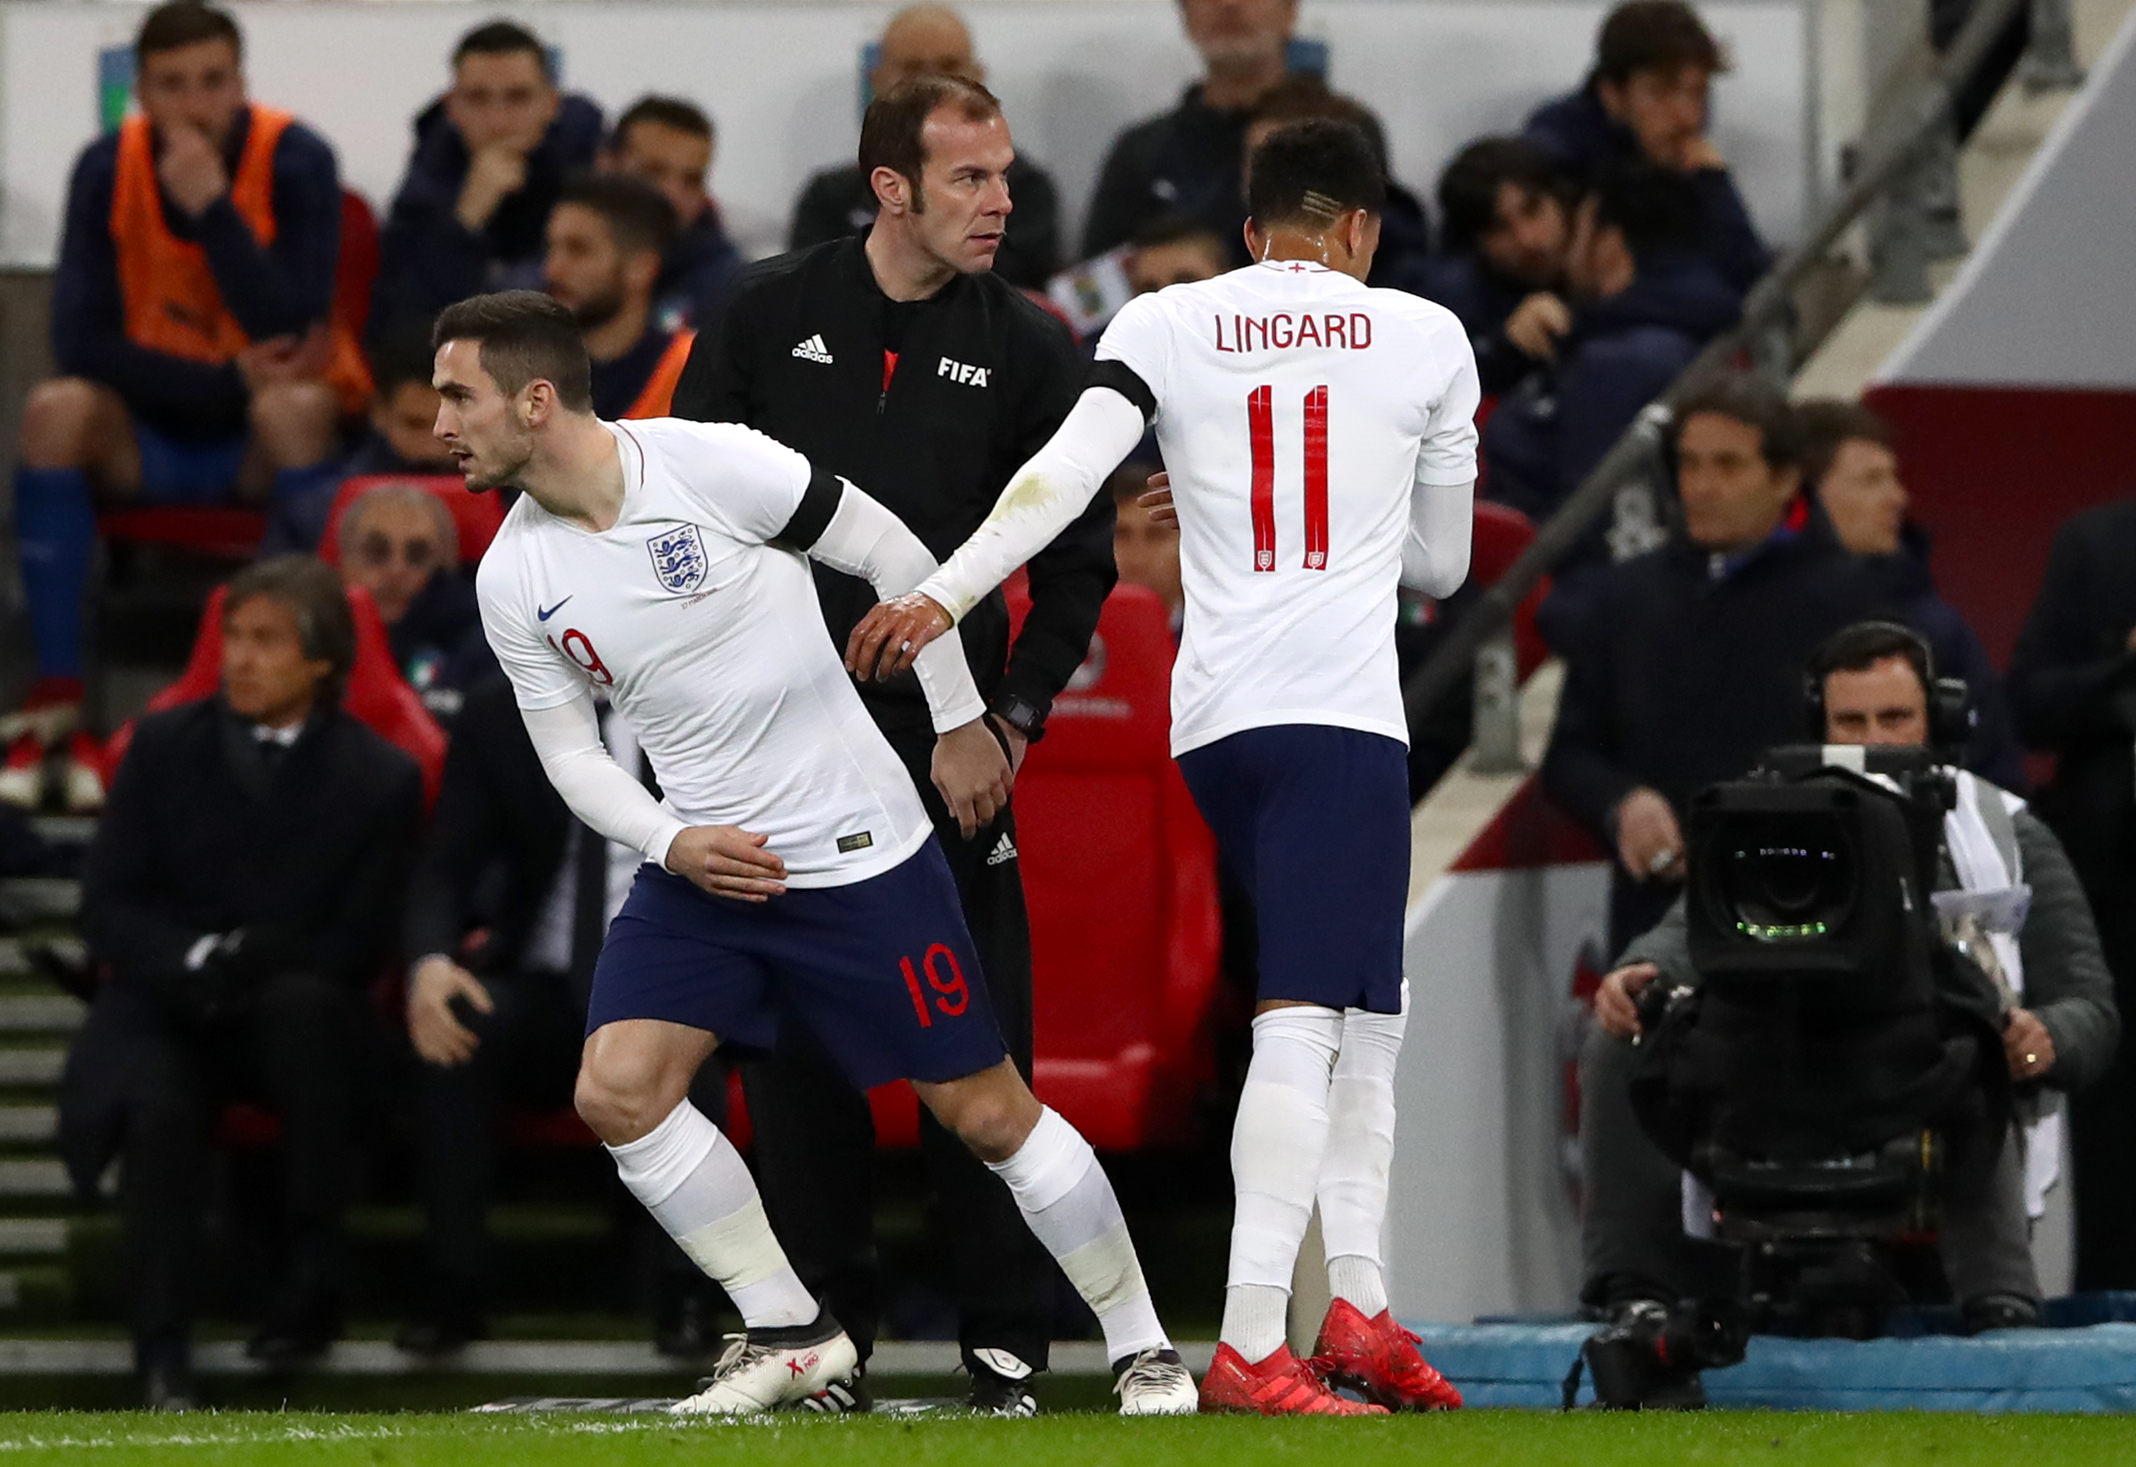 Lewis Cook's England debut has earned his grandfather £17000